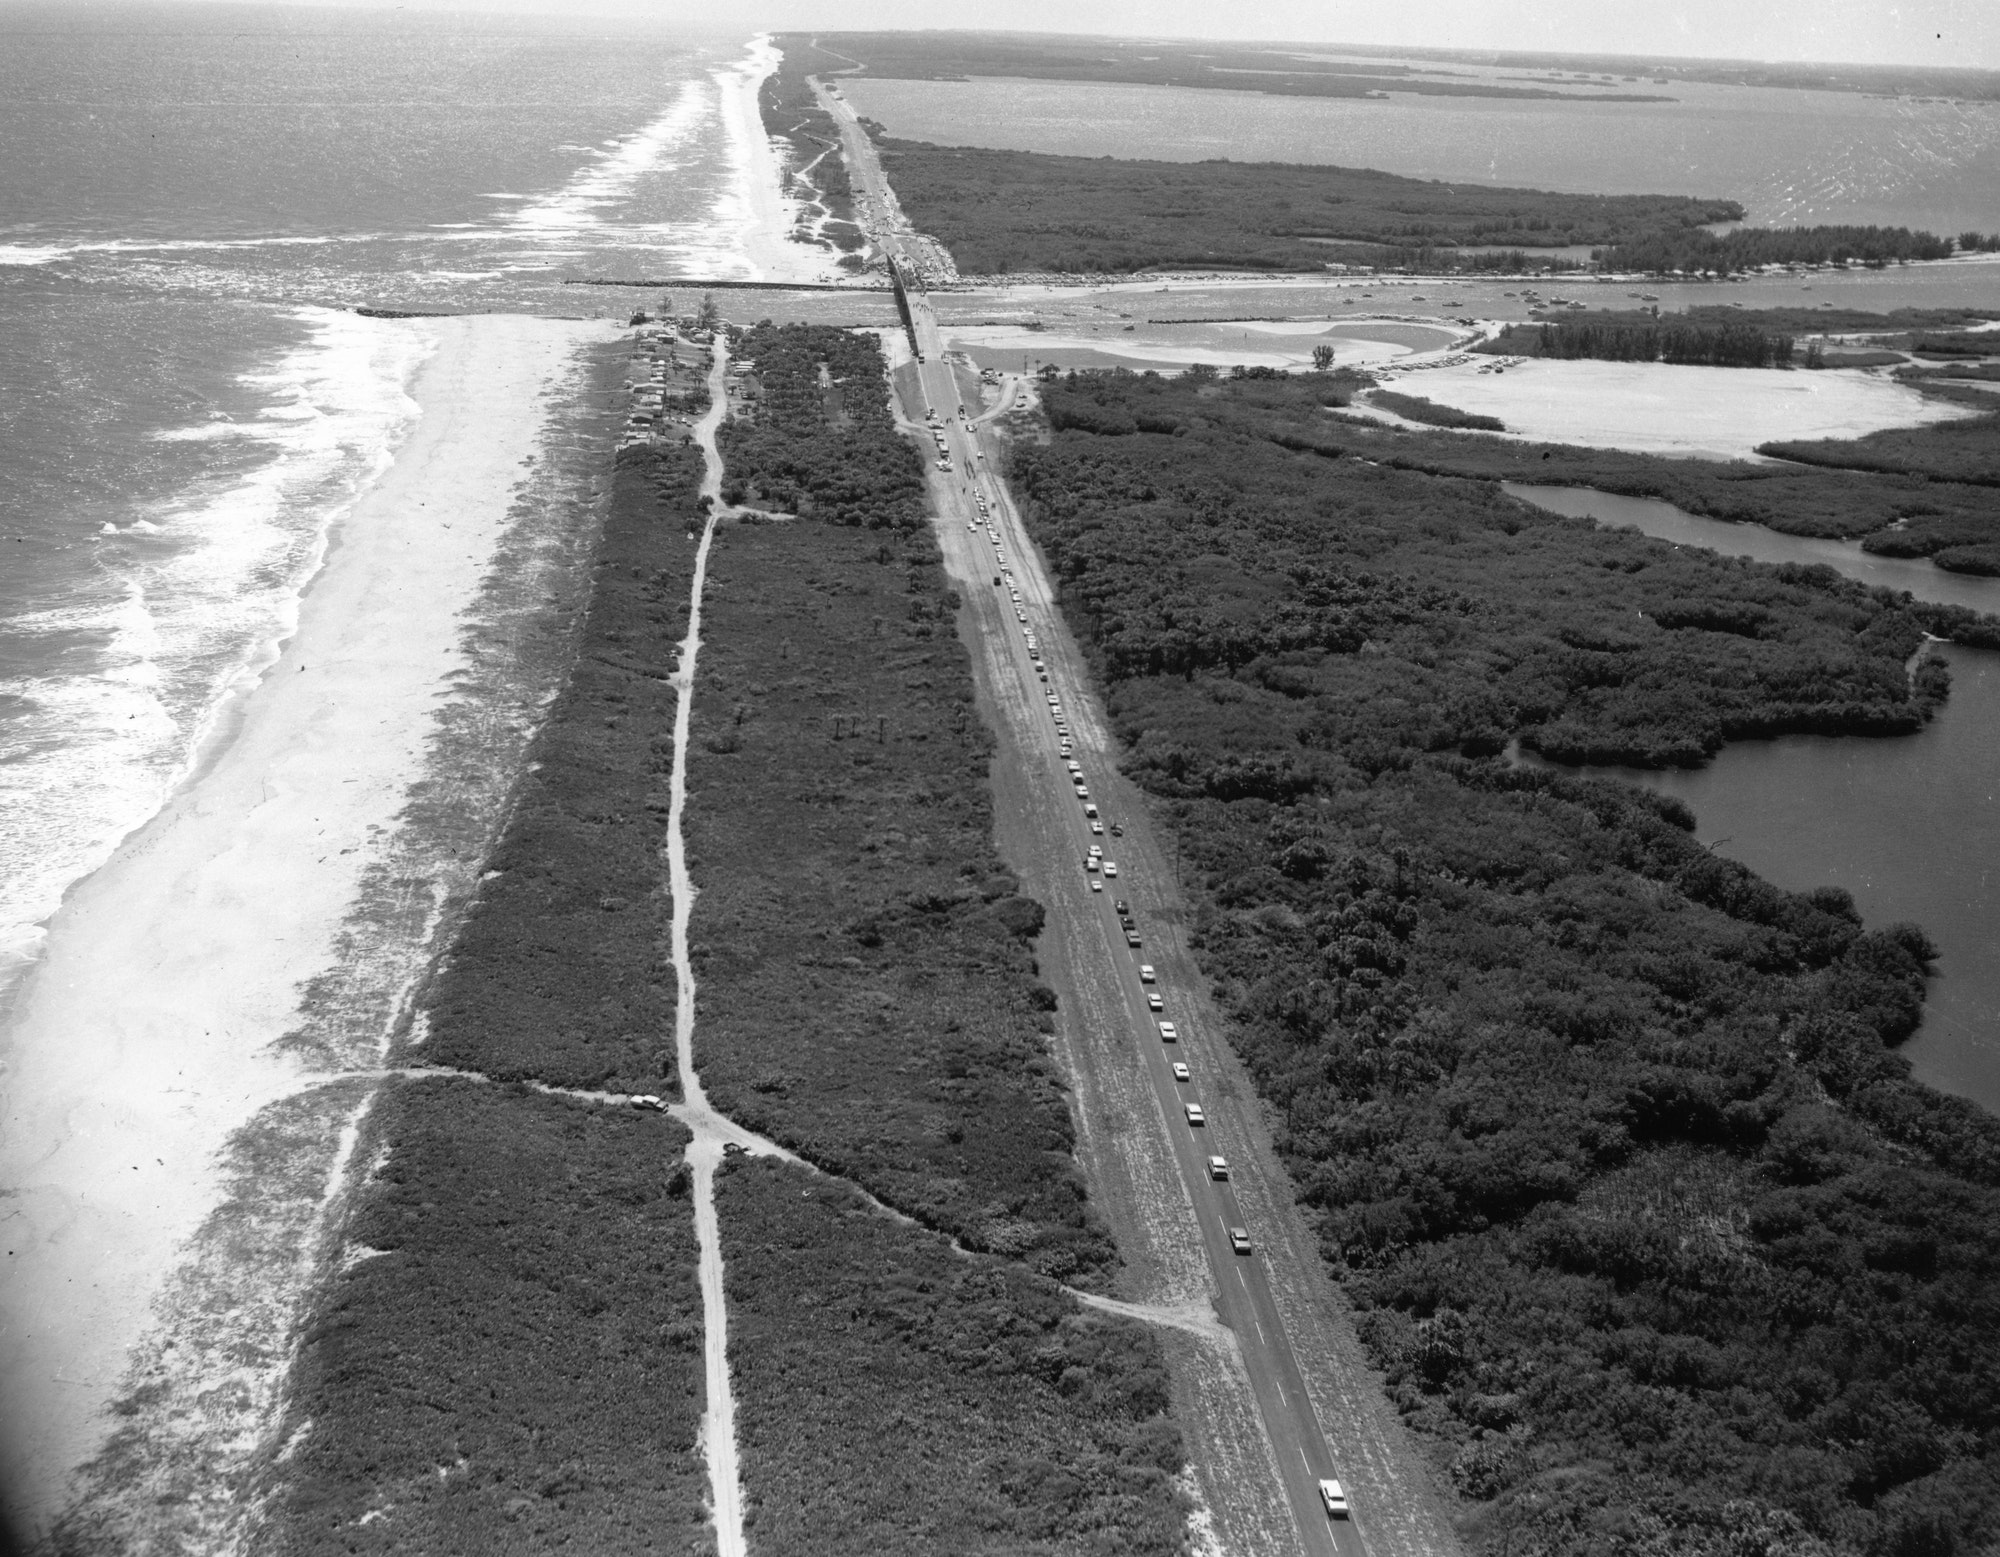 aerial view of cars lined up on AIA headed South towards the inlet with shoreline and Atlantic Ocean on the left